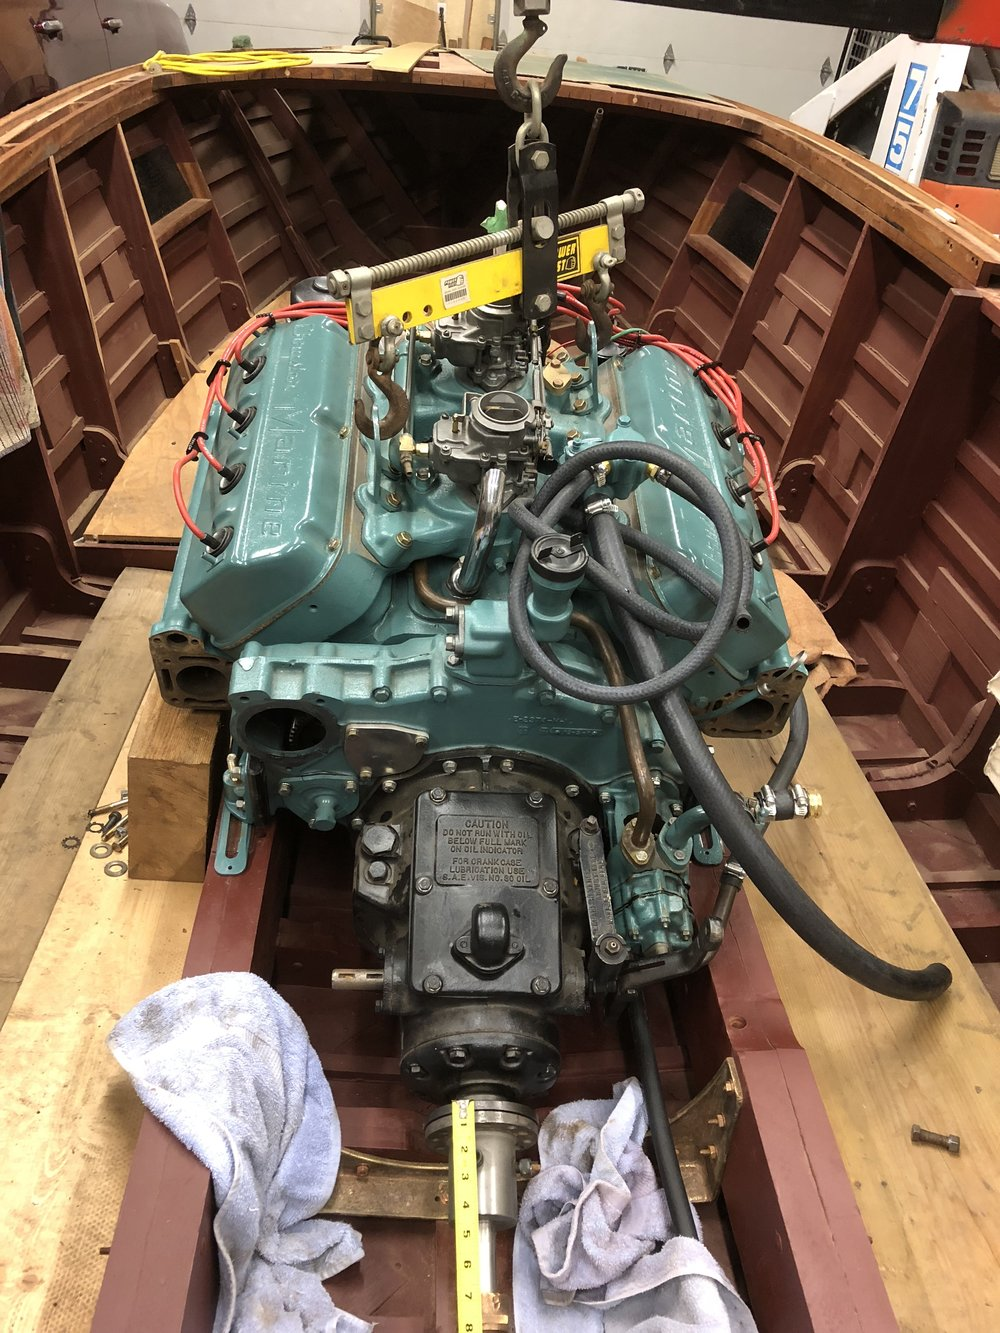 M45 Chrysler 331 Hemi - While the boat reconstruction was taking place engines and parts, etc were delivered to Island D Automotive, Nanaimo, BC for total rebuild. One of the engine blocks had huge cracks in the cylinders so it was useless. The